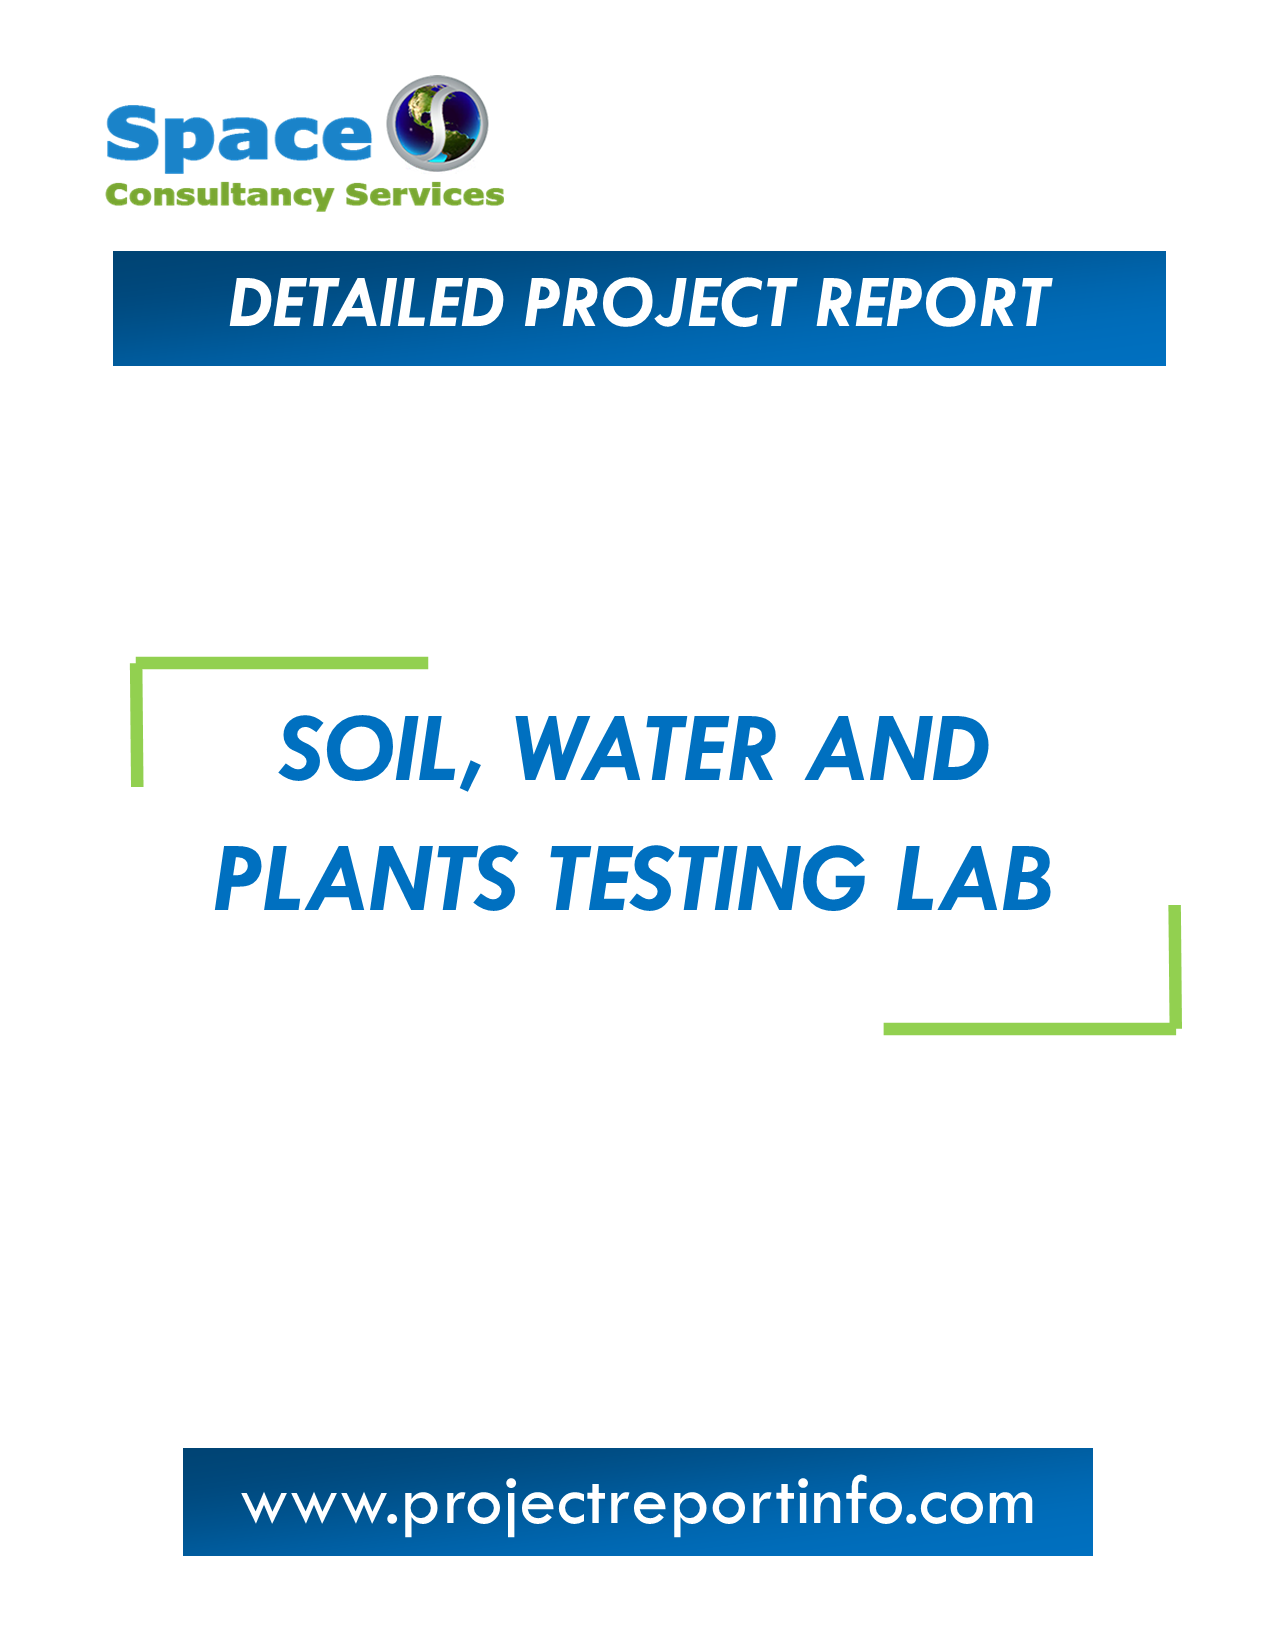 Project Report on Soil, Water and Plants Testing Lab